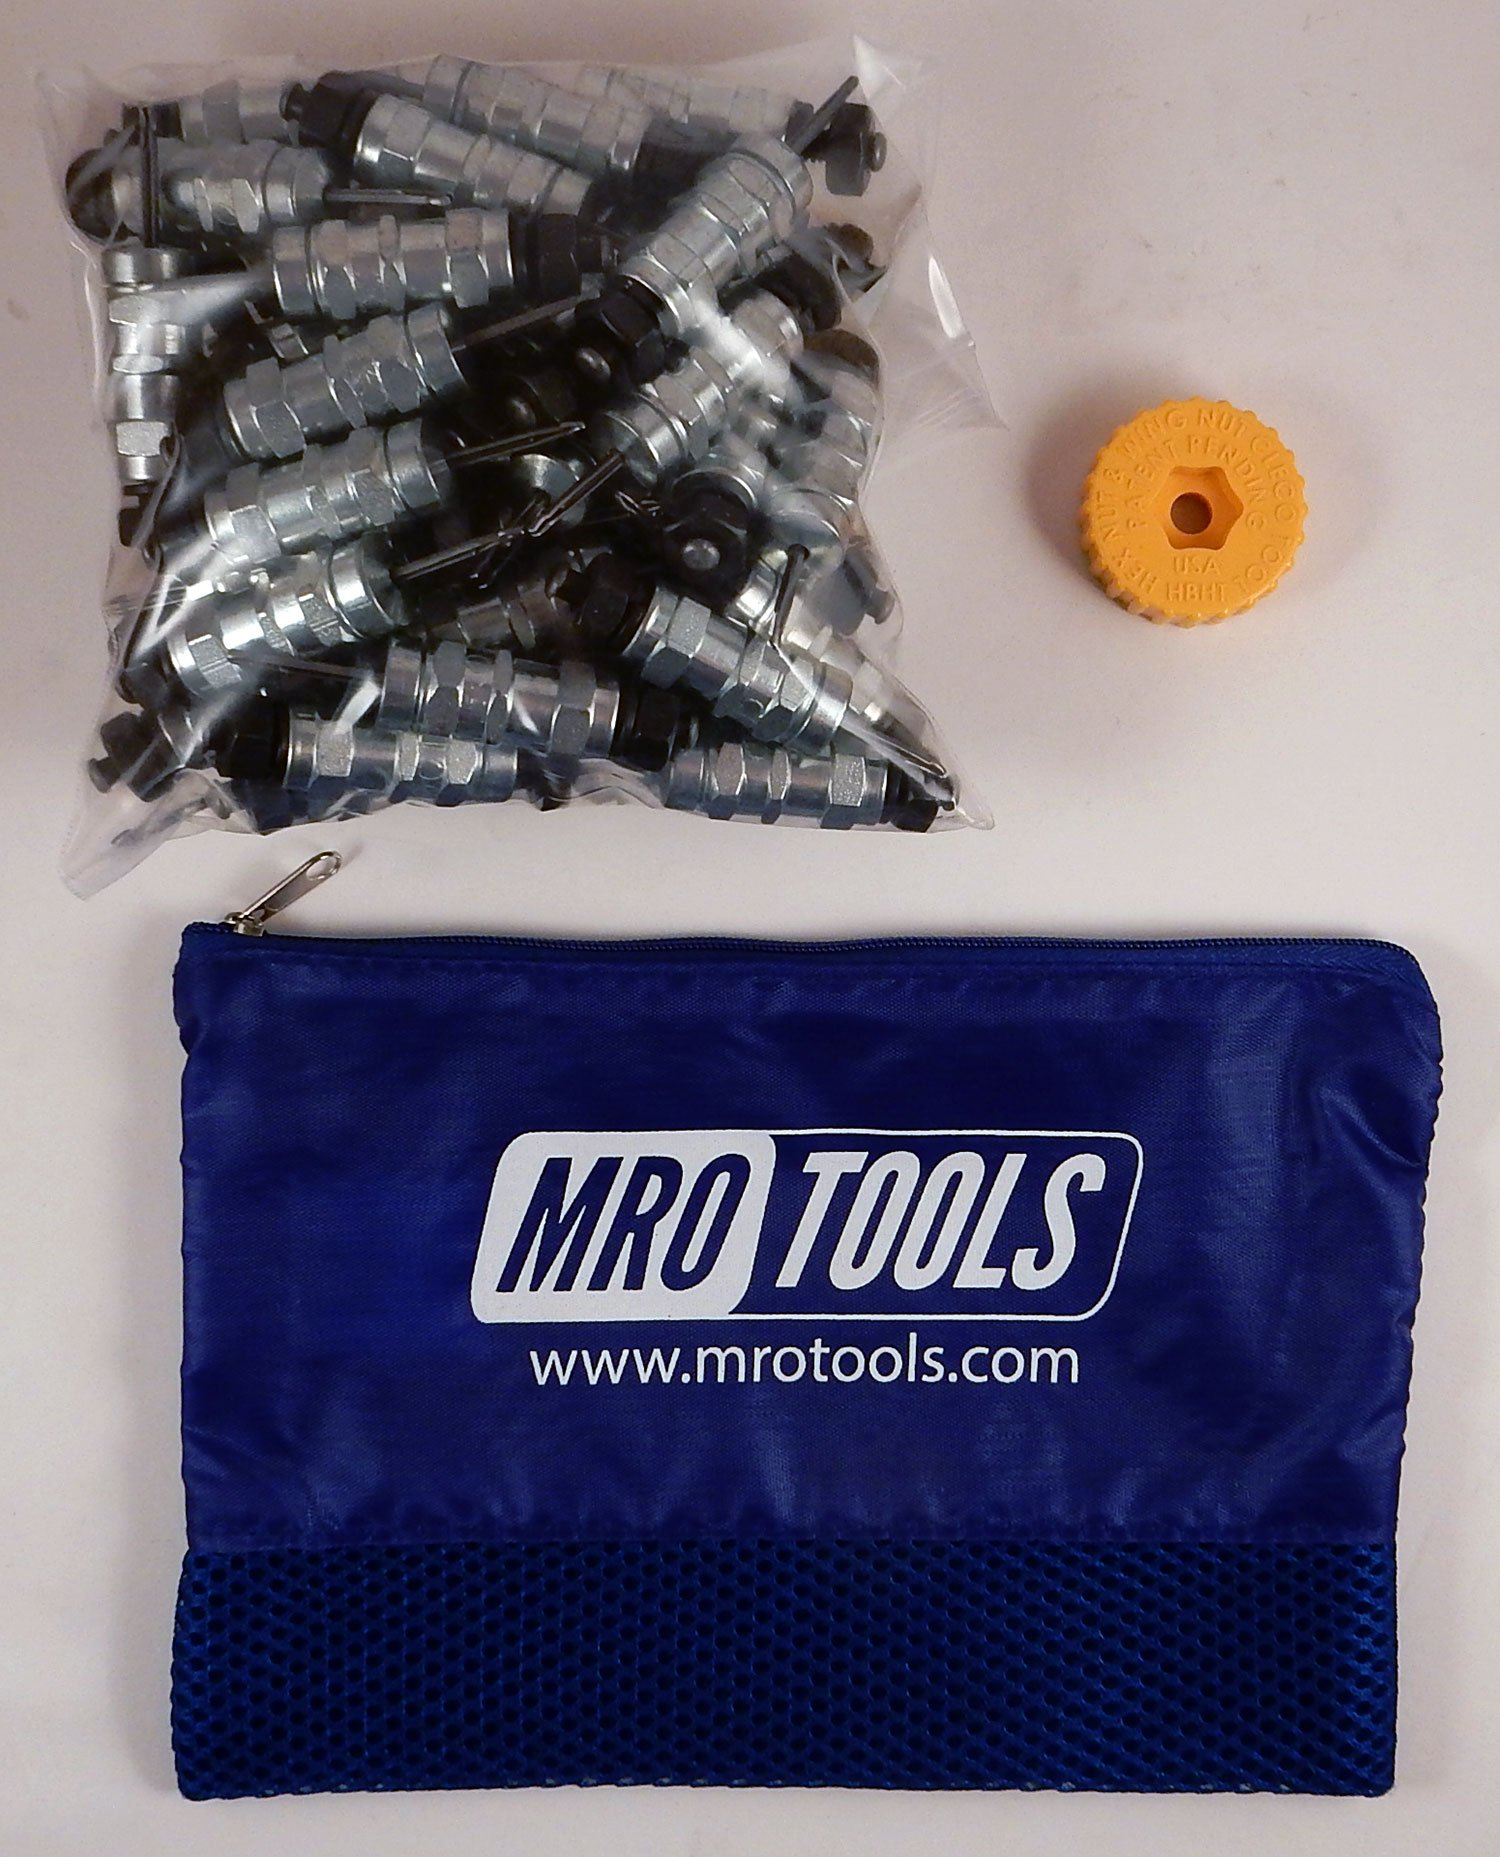 50 3/32 Standard Hex-Nut Cleco Fasteners w/ HBHT Tool & Carry Bag (KHN1S50-3/32) by MRO Tools Cleco Fasteners